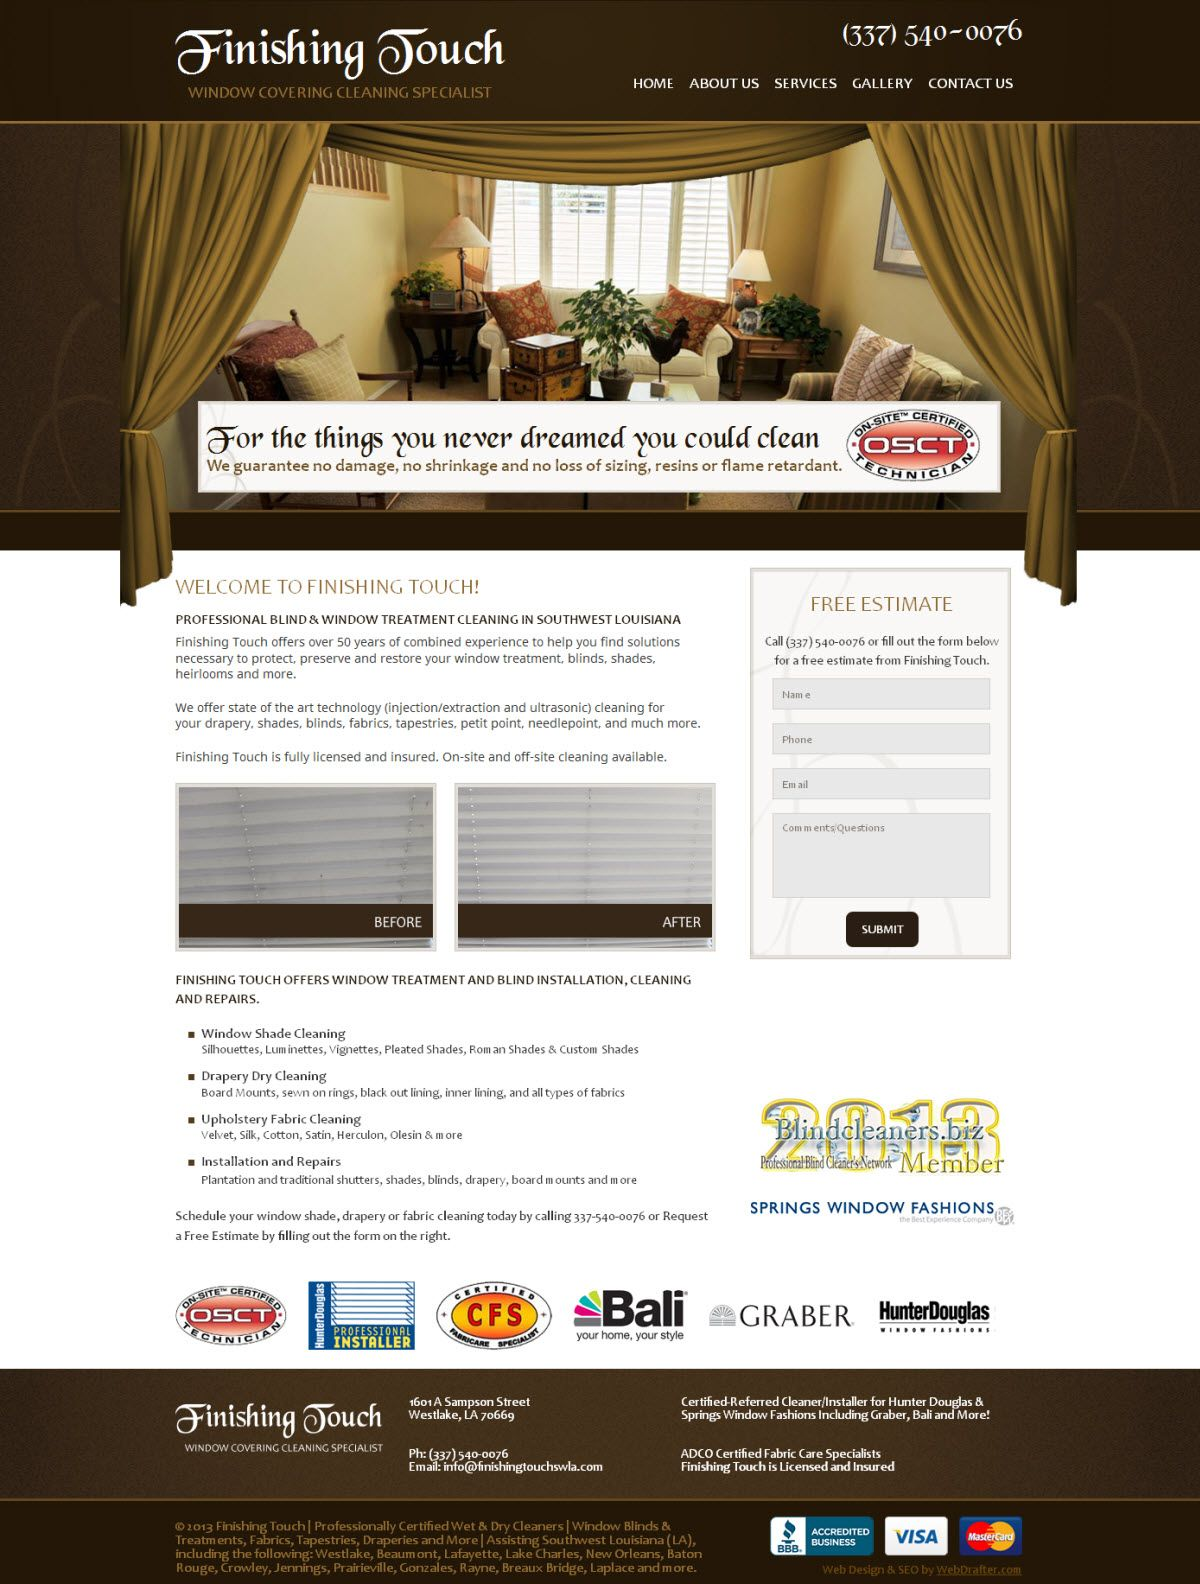 Finishing Touch Web Design By Webdrafter Com Springs Window Fashions Custom Website Design Design